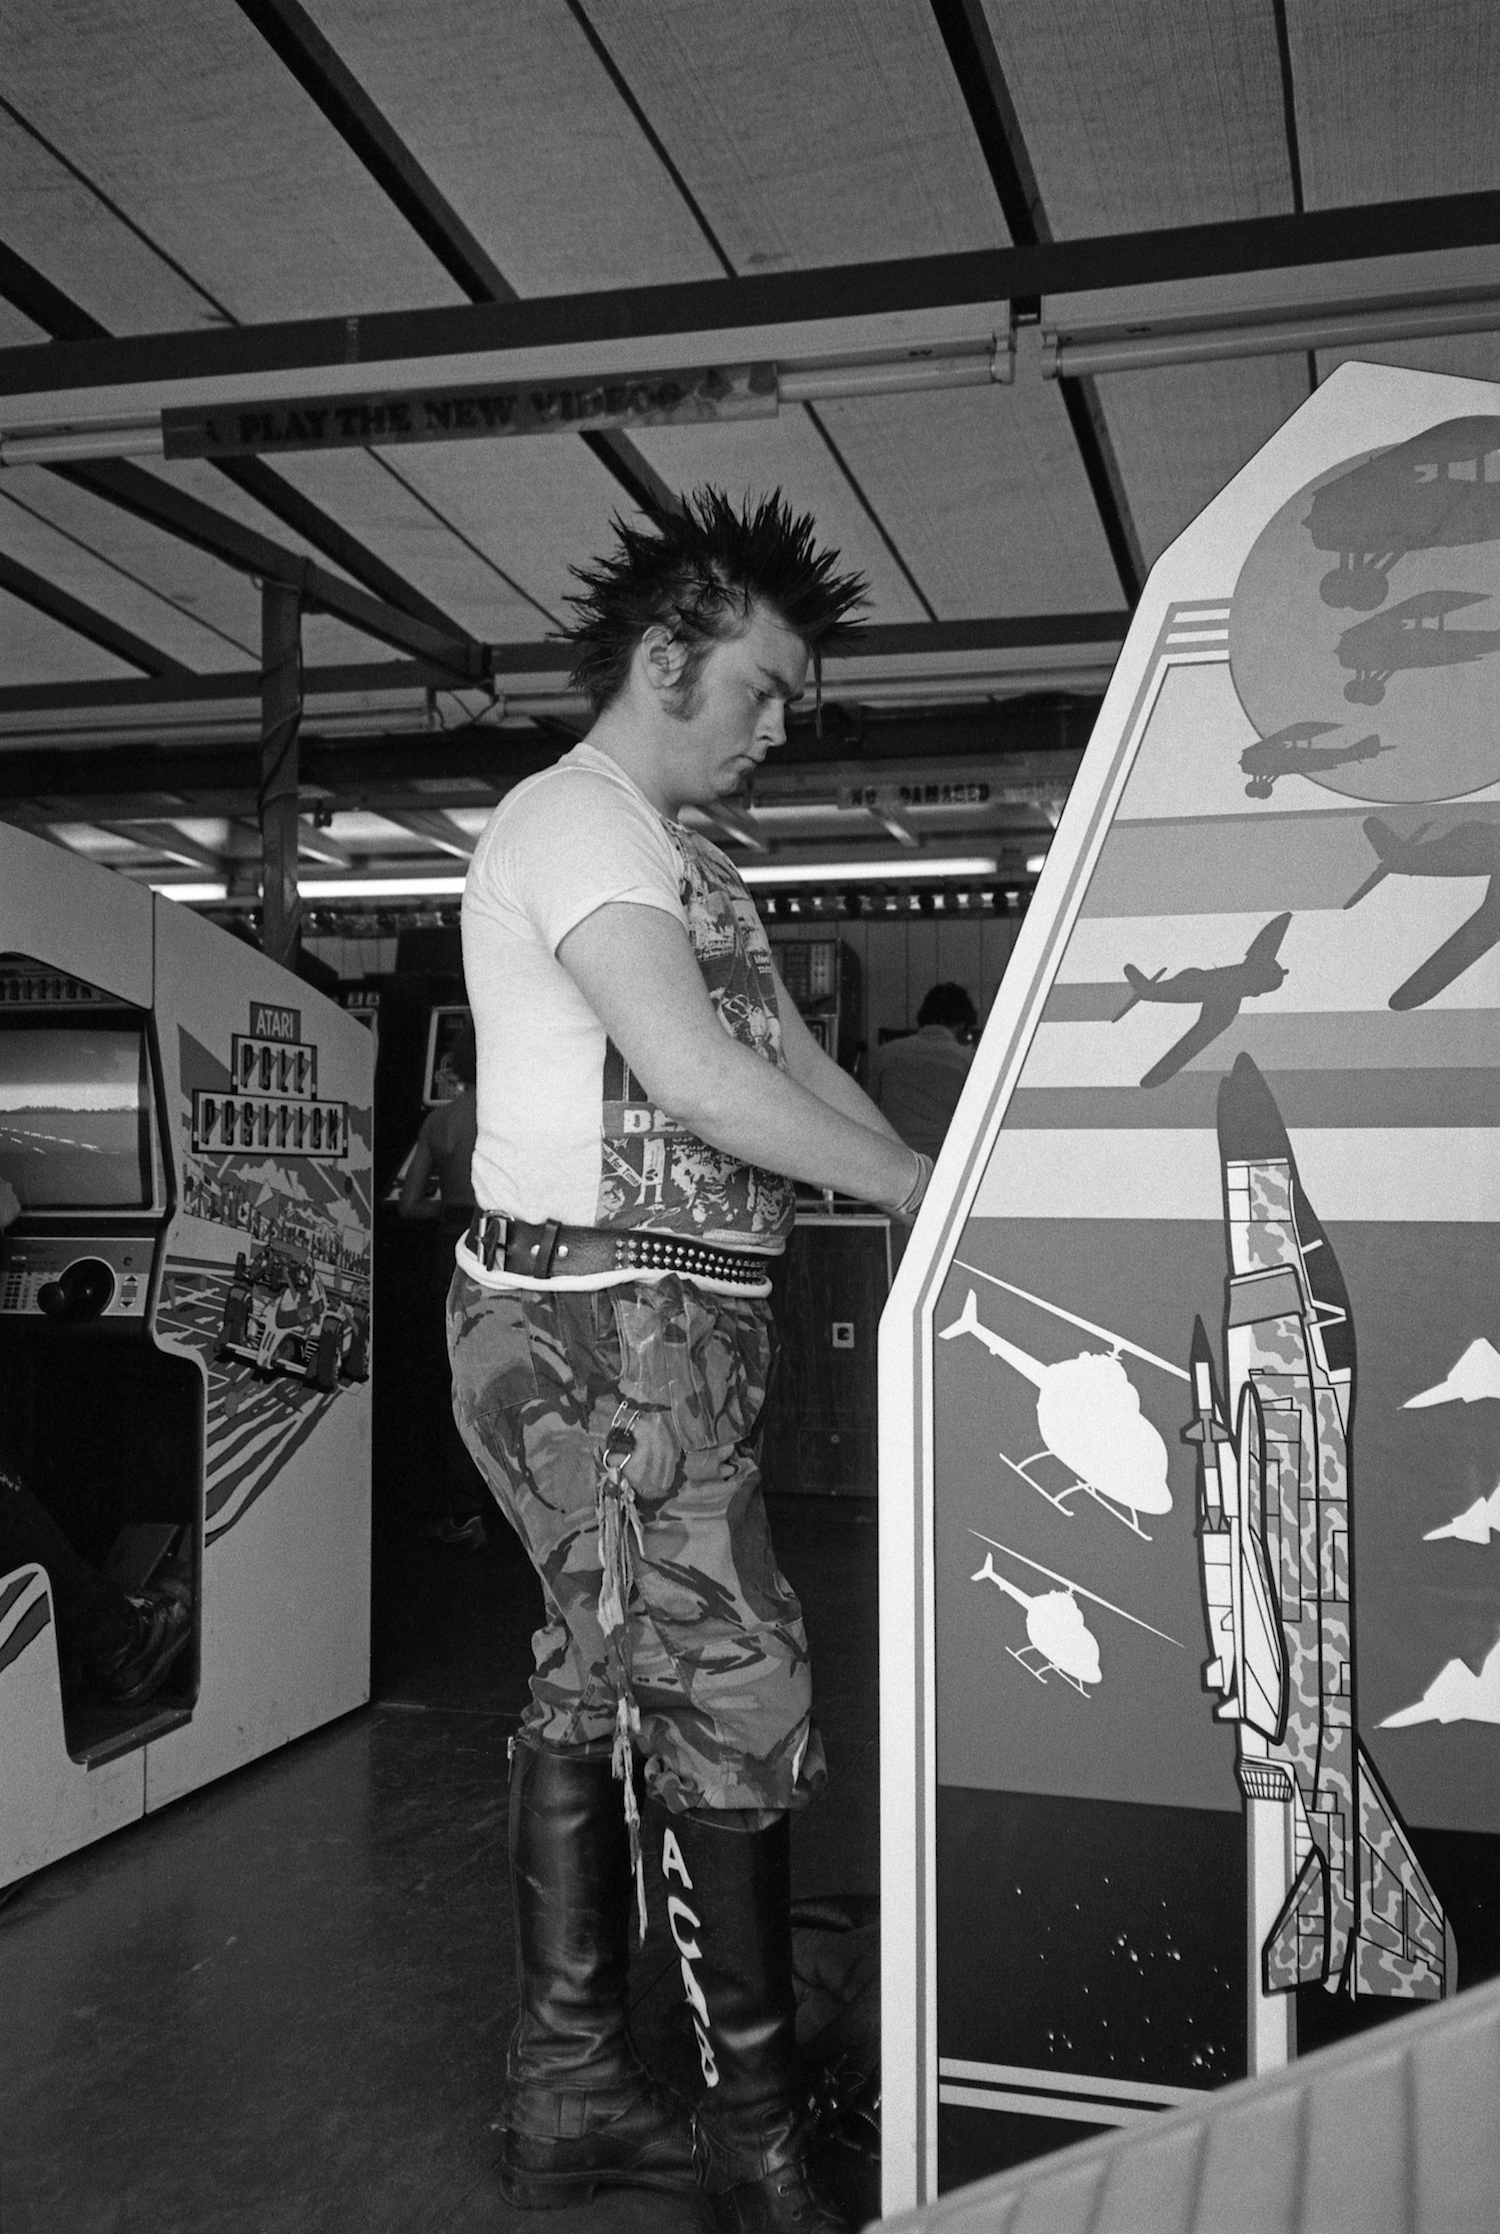 punk Richmond funfair - 1980s